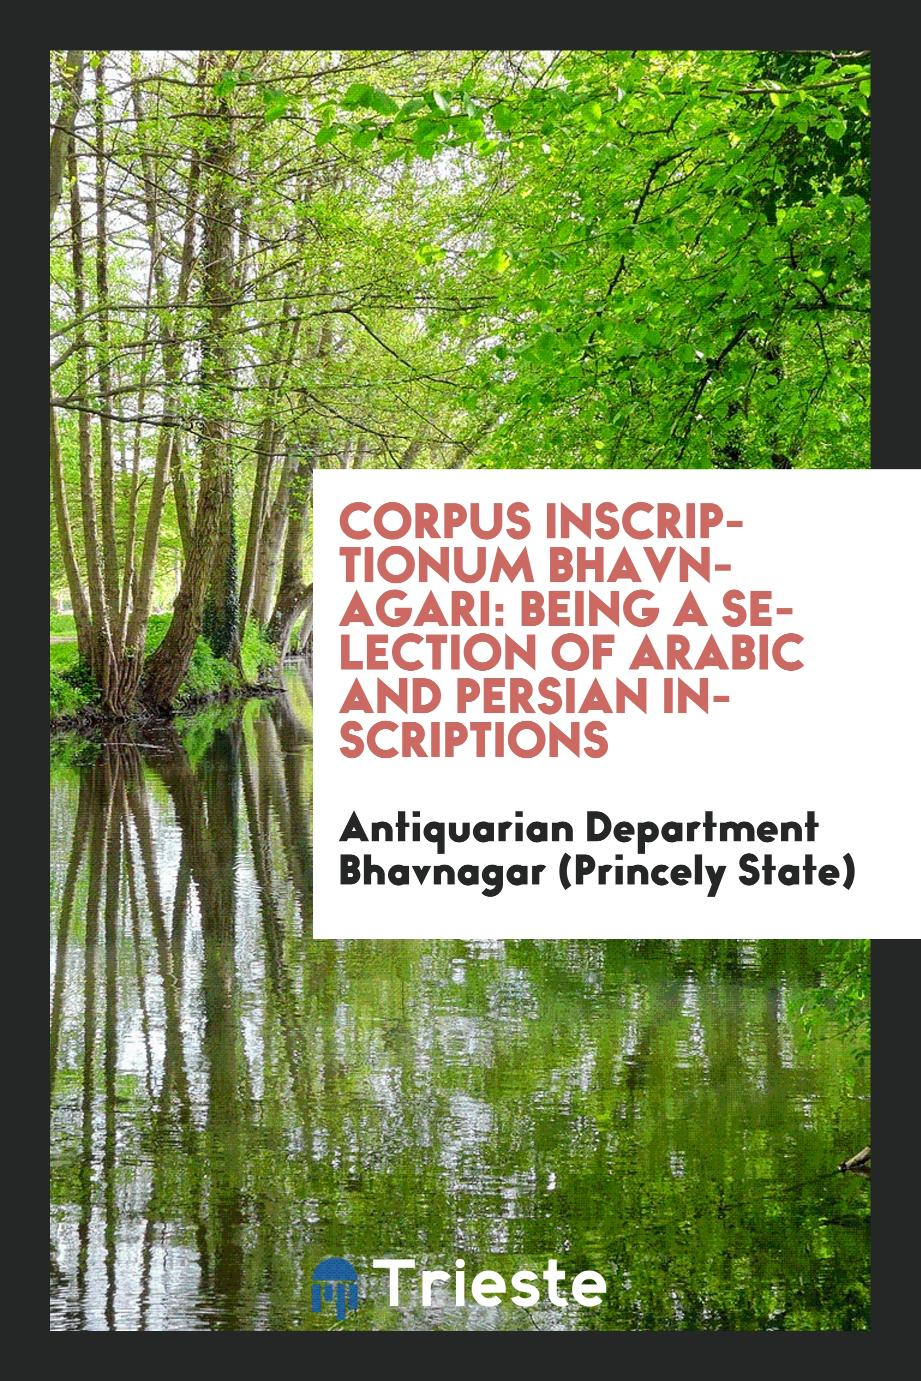 Corpus Inscriptionum Bhavnagari: Being a Selection of Arabic and Persian Inscriptions